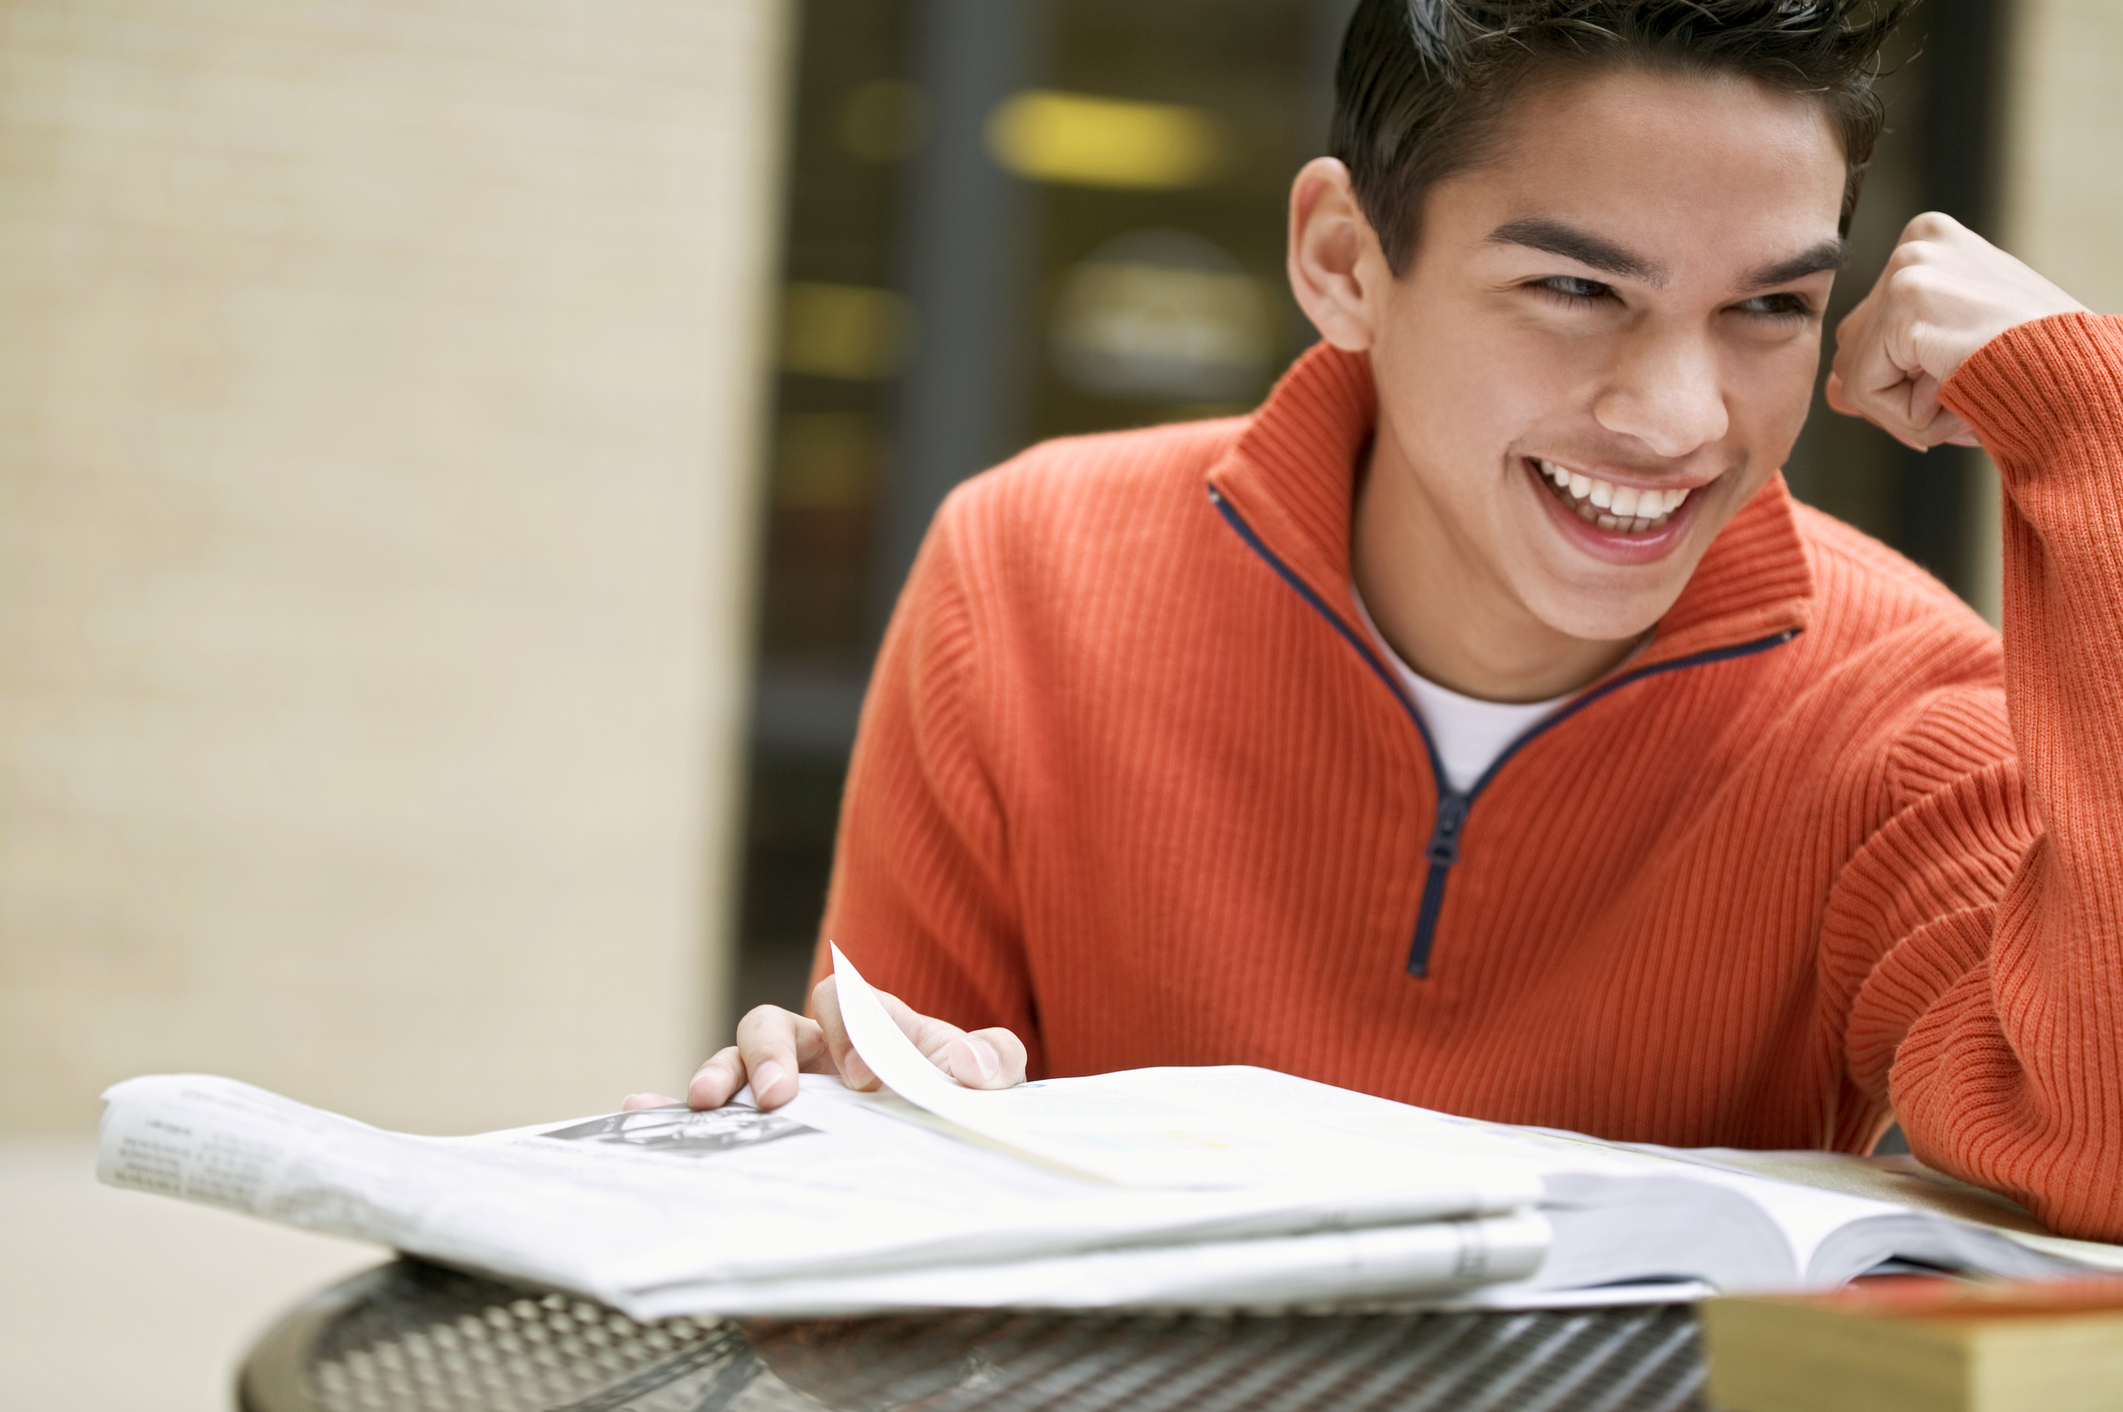 Smiling student studying_293433